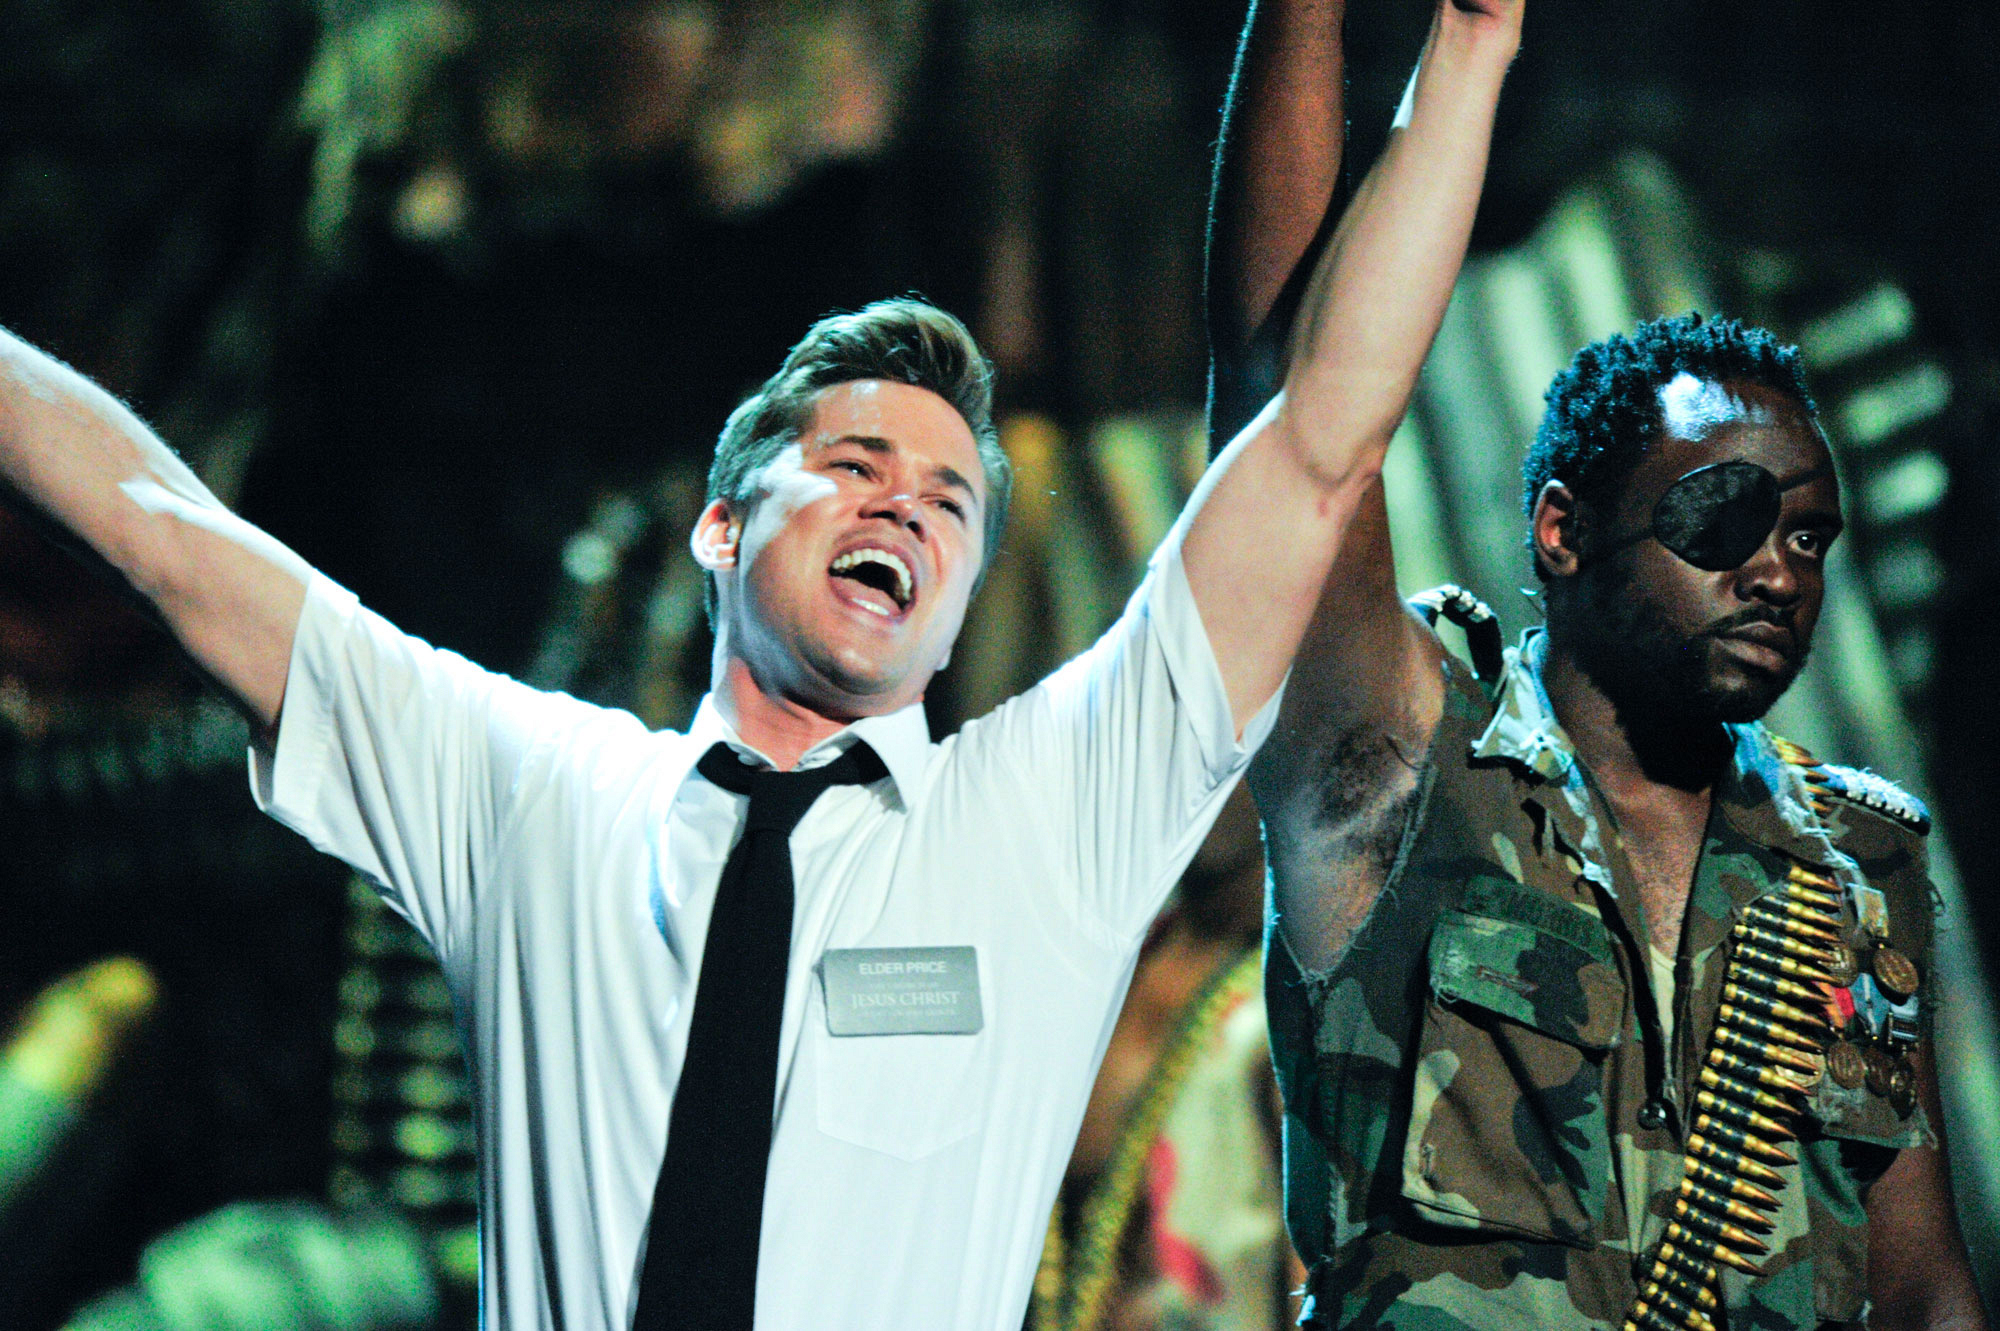 The Book of Mormon to Perform